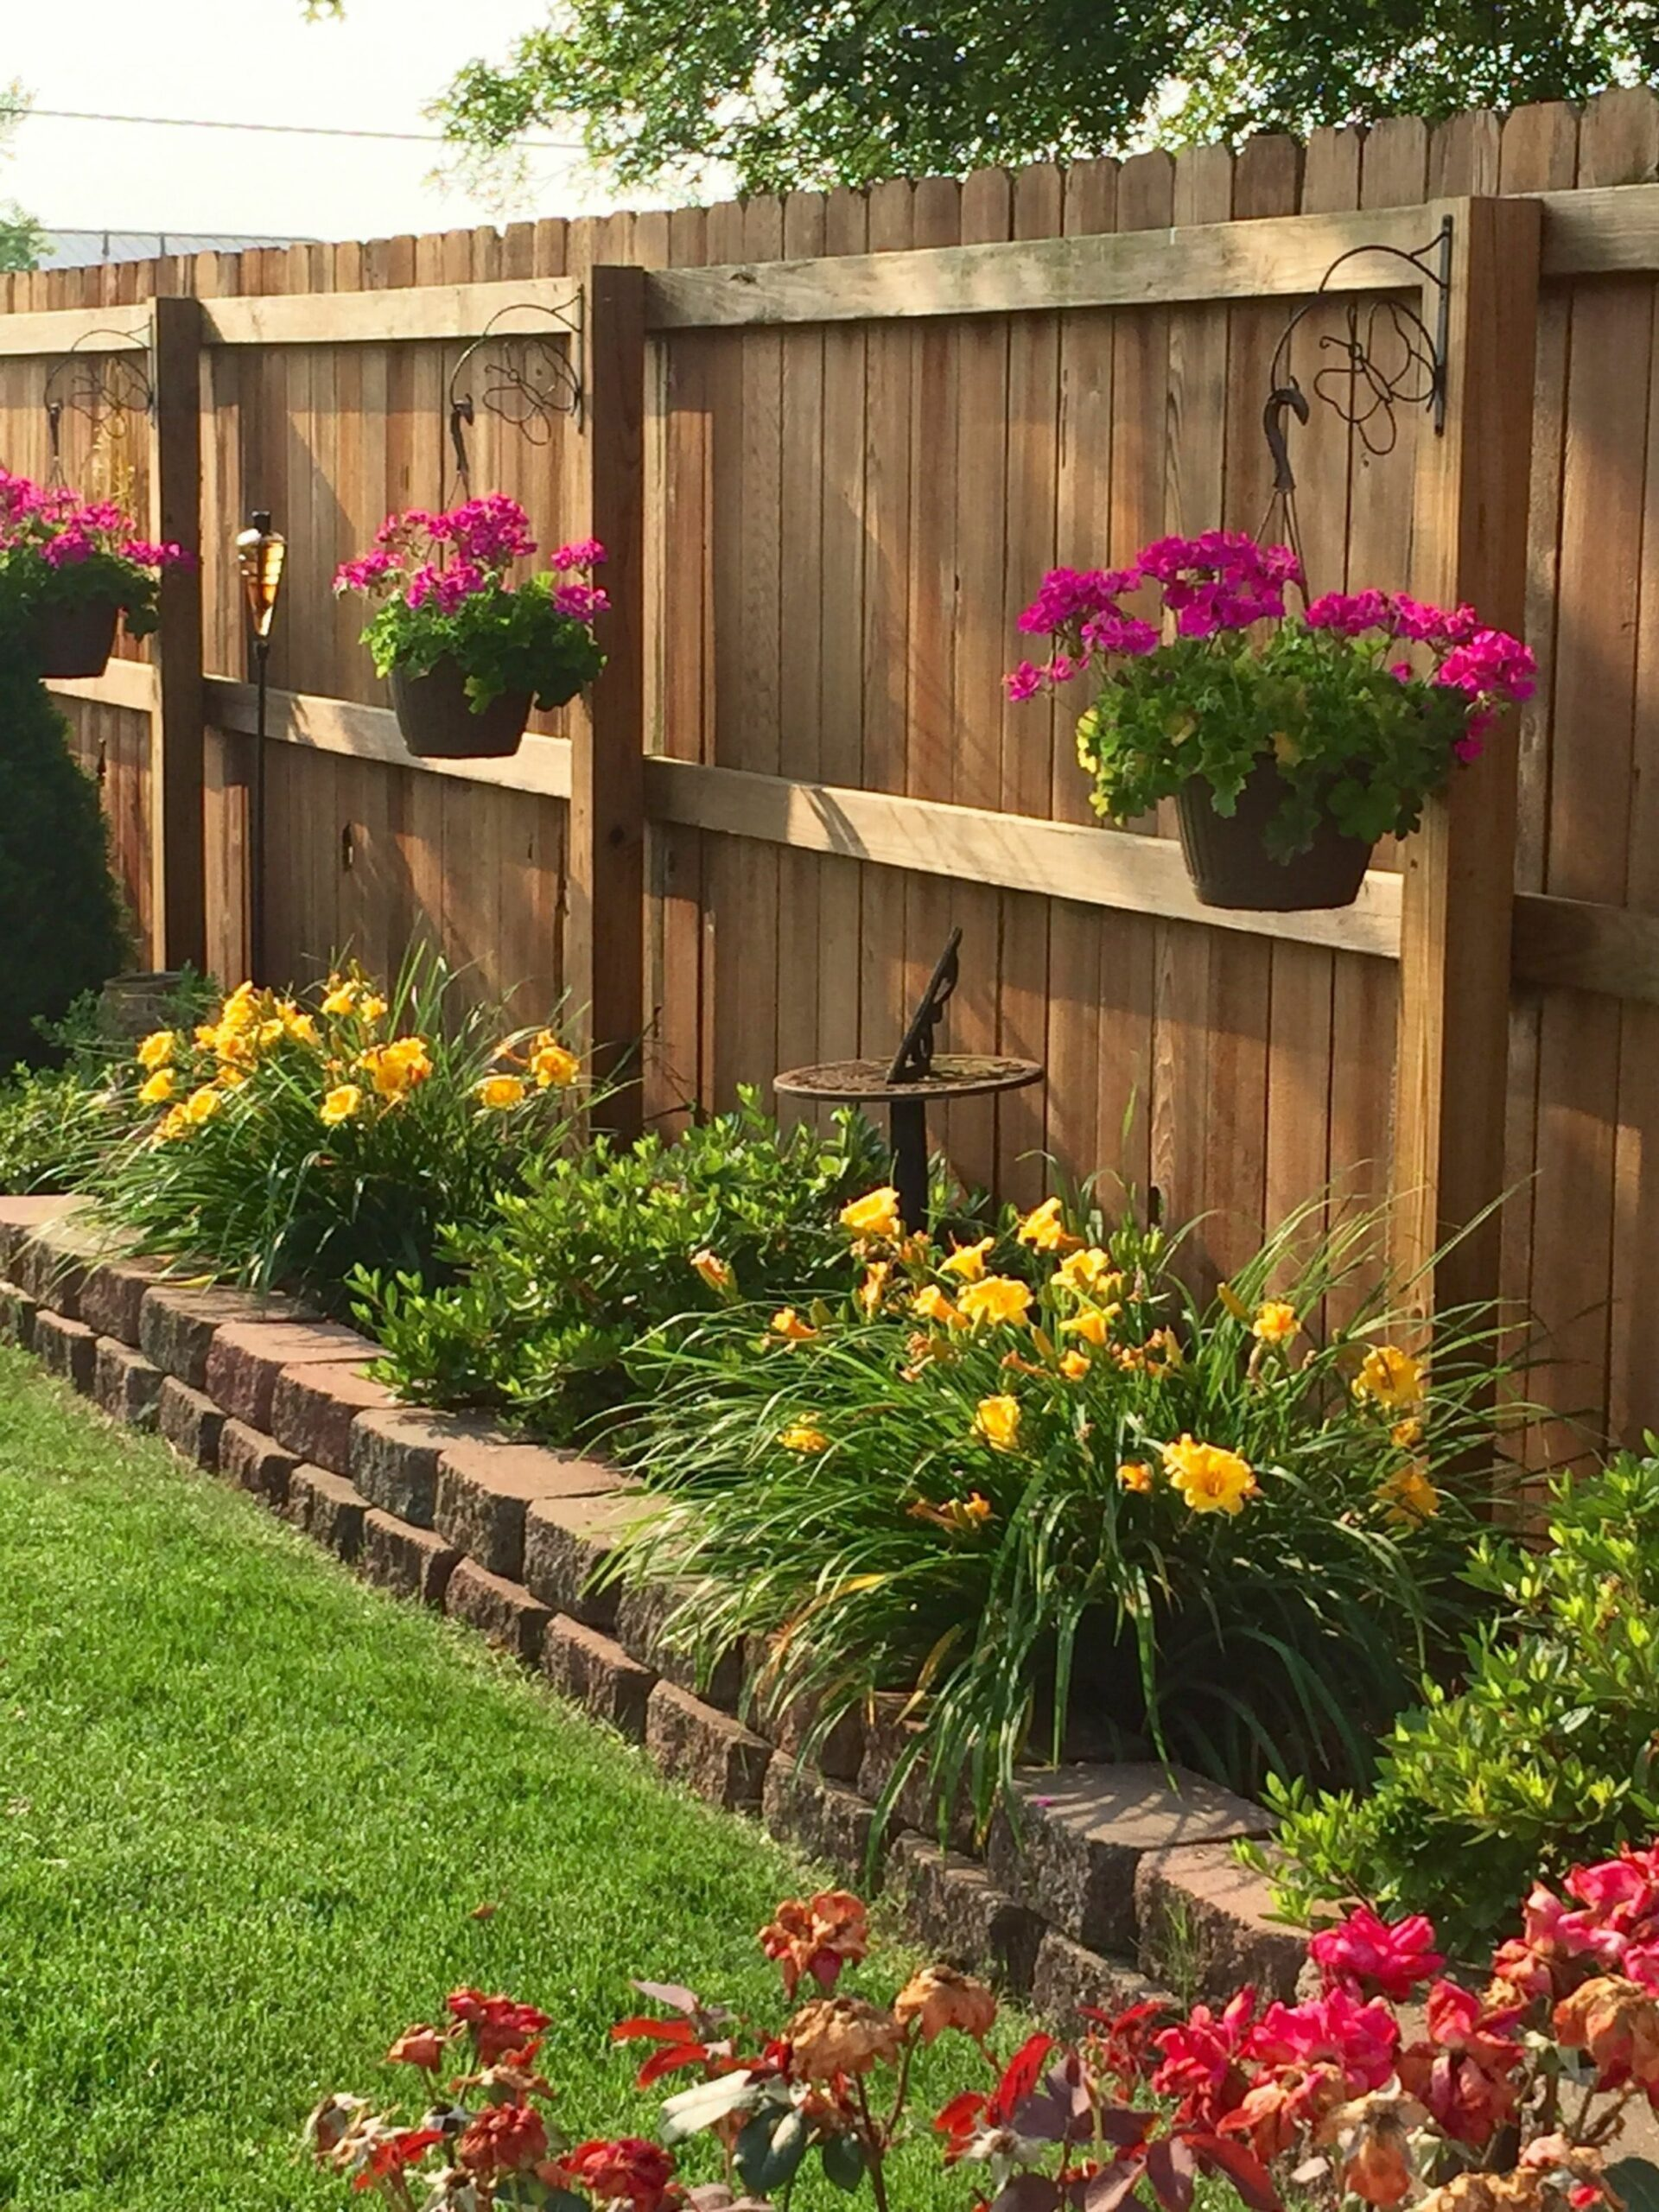 All about backyard landscaping ideas on a budget small layout ..